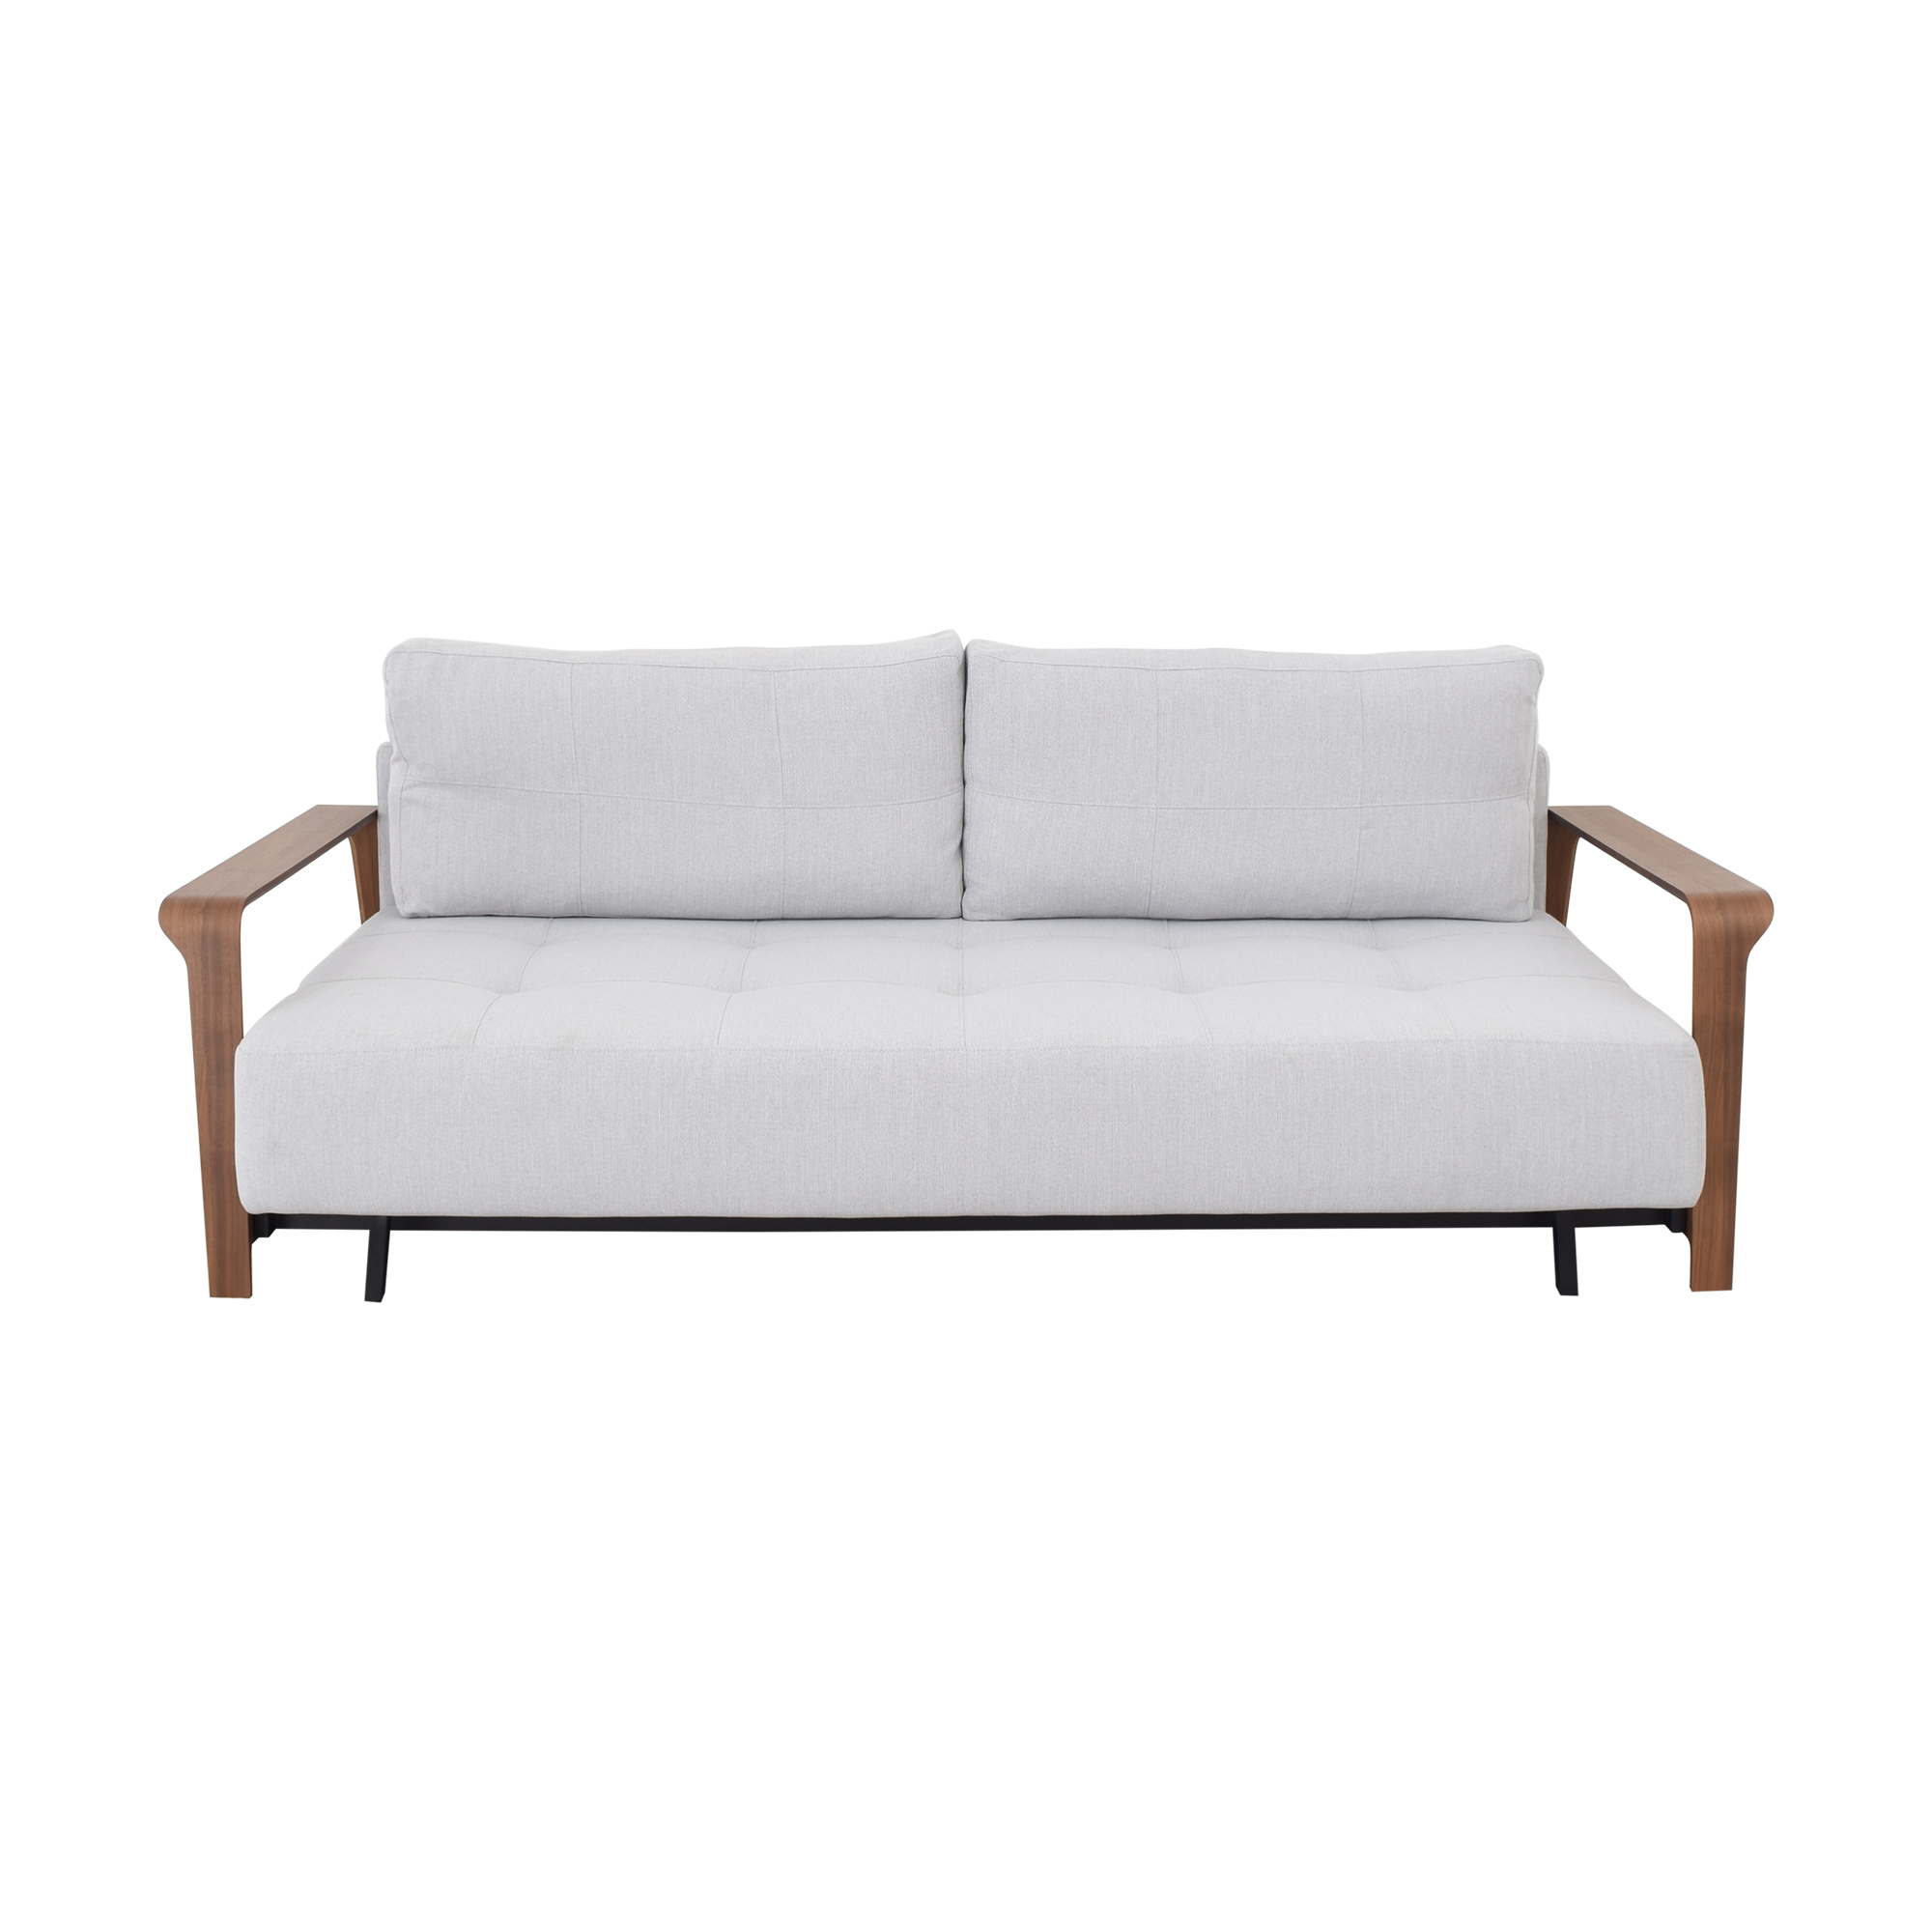 shop Innovation Living Ran Deluxe Sofa Innovation Living Classic Sofas